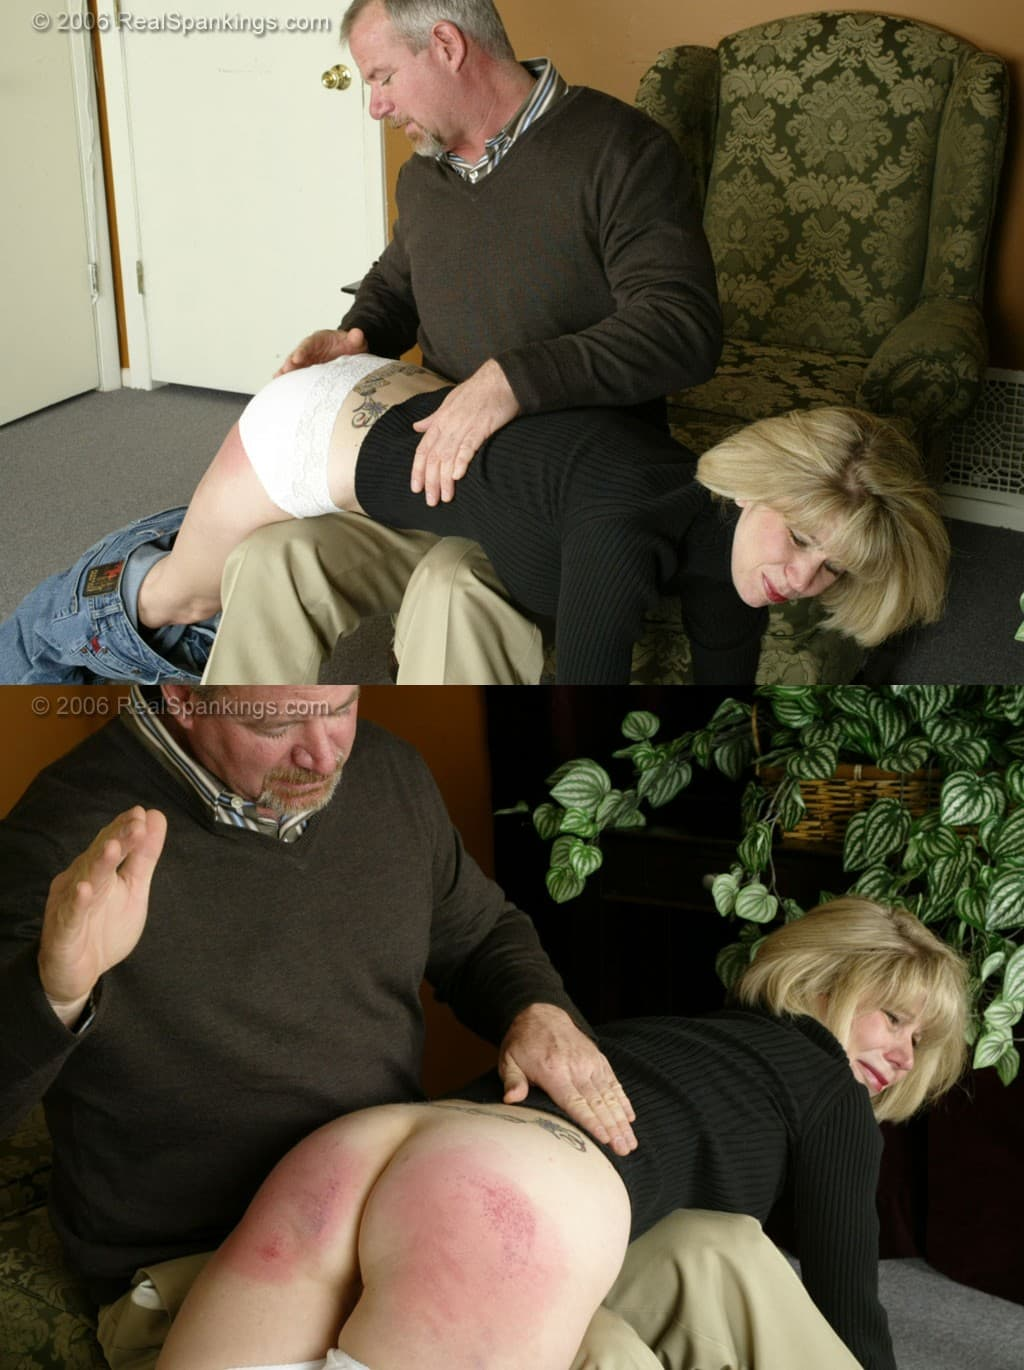 2021 04 07 121030 1 - Real Spankings – MP4/SD – Elizabeth: Punished In The Living Room (Part 1) (Release date: Apr 06, 2021) - OTK (Over The Knee)